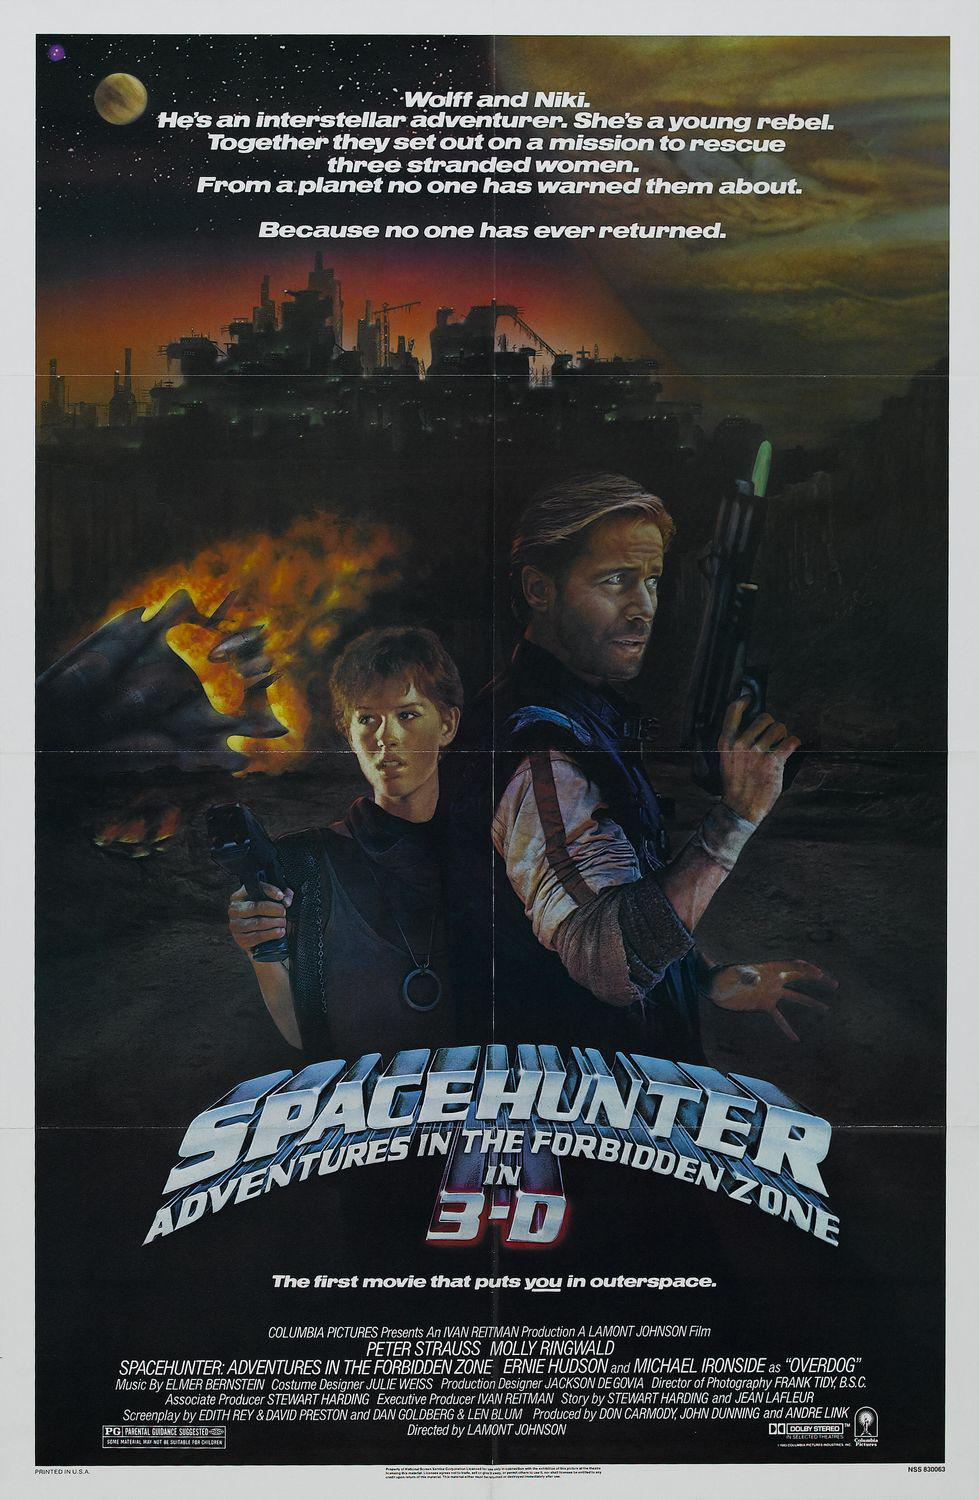 Spacehunter - poster - Adventures in the forbidden zone. Wolff and Niki. He's an interstellar adventurer. She's a young rebel. Together they set out on a Mission to rescue three stranded women. From a Planet no one has warned them about. Because no one has ever returned. Peter Strauss - Molly Ringwald - Ernie Hudson and Michael Ironside as Overdog